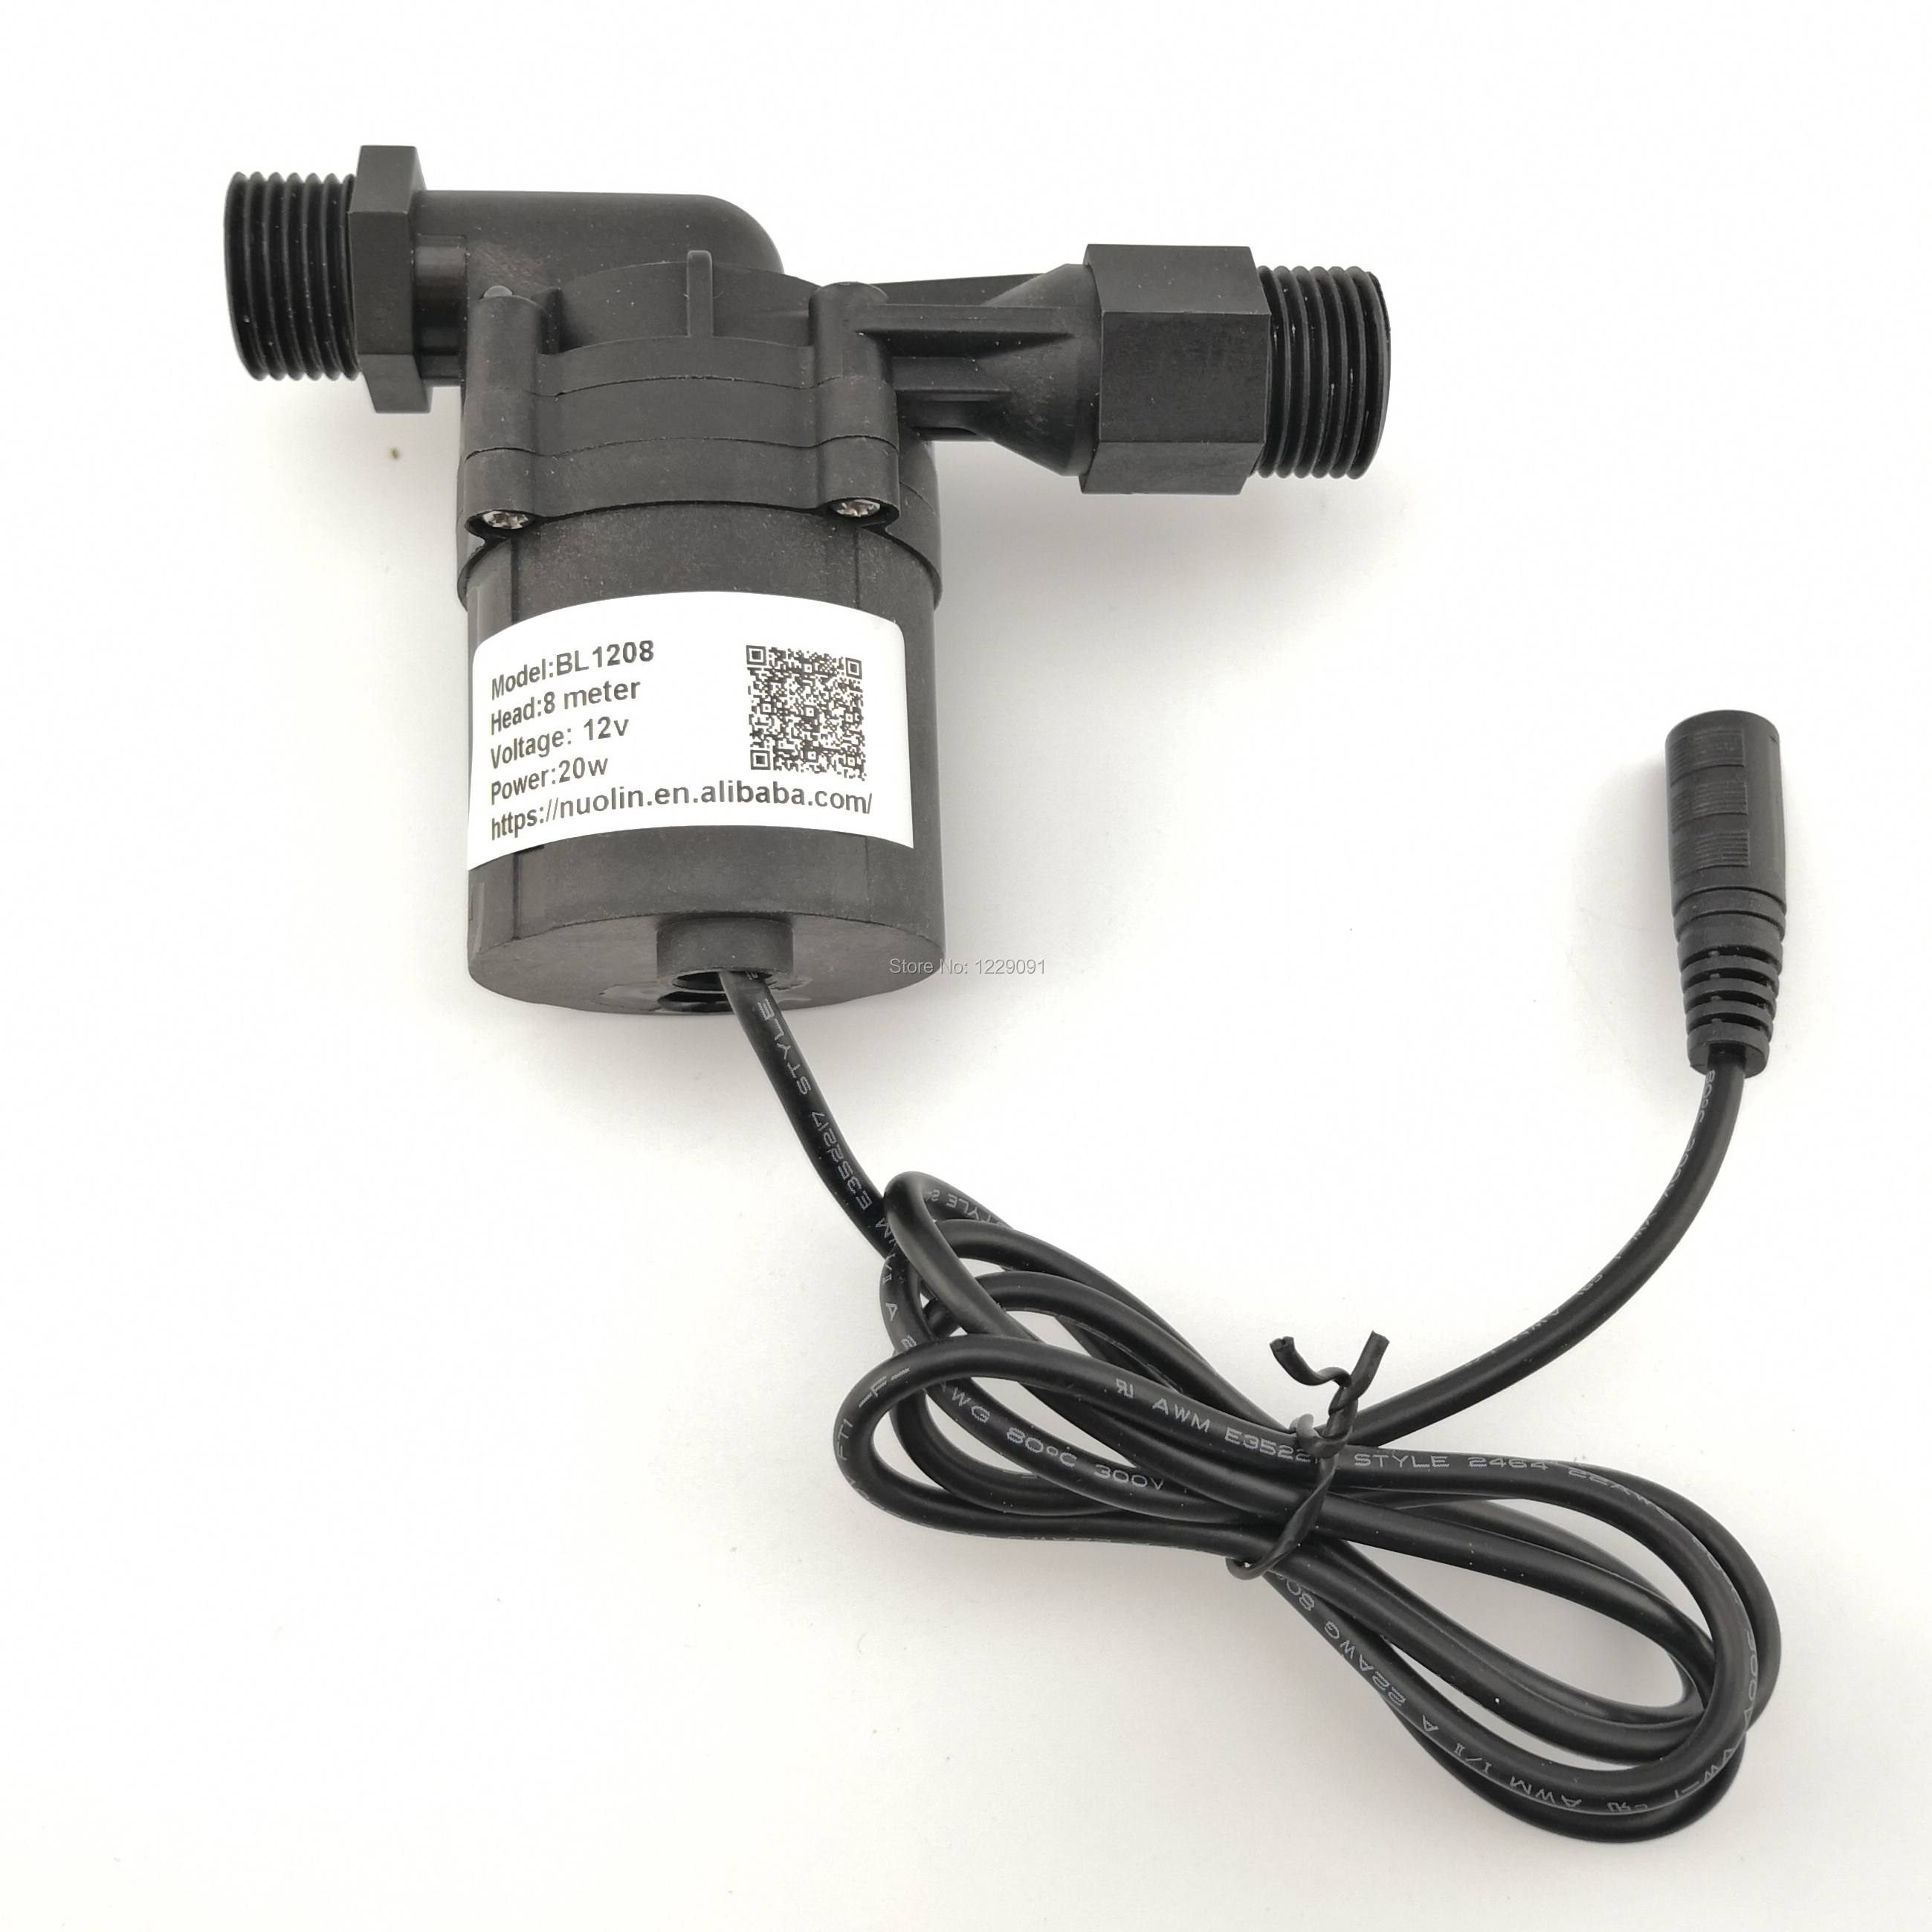 1pcs 20w DC <font><b>12V</b></font> 8M <font><b>water</b></font> heater booster <font><b>Pump</b></font> brushless Motor <font><b>Water</b></font> <font><b>Pump</b></font> circulation <font><b>pump</b></font> <font><b>submersible</b></font> image